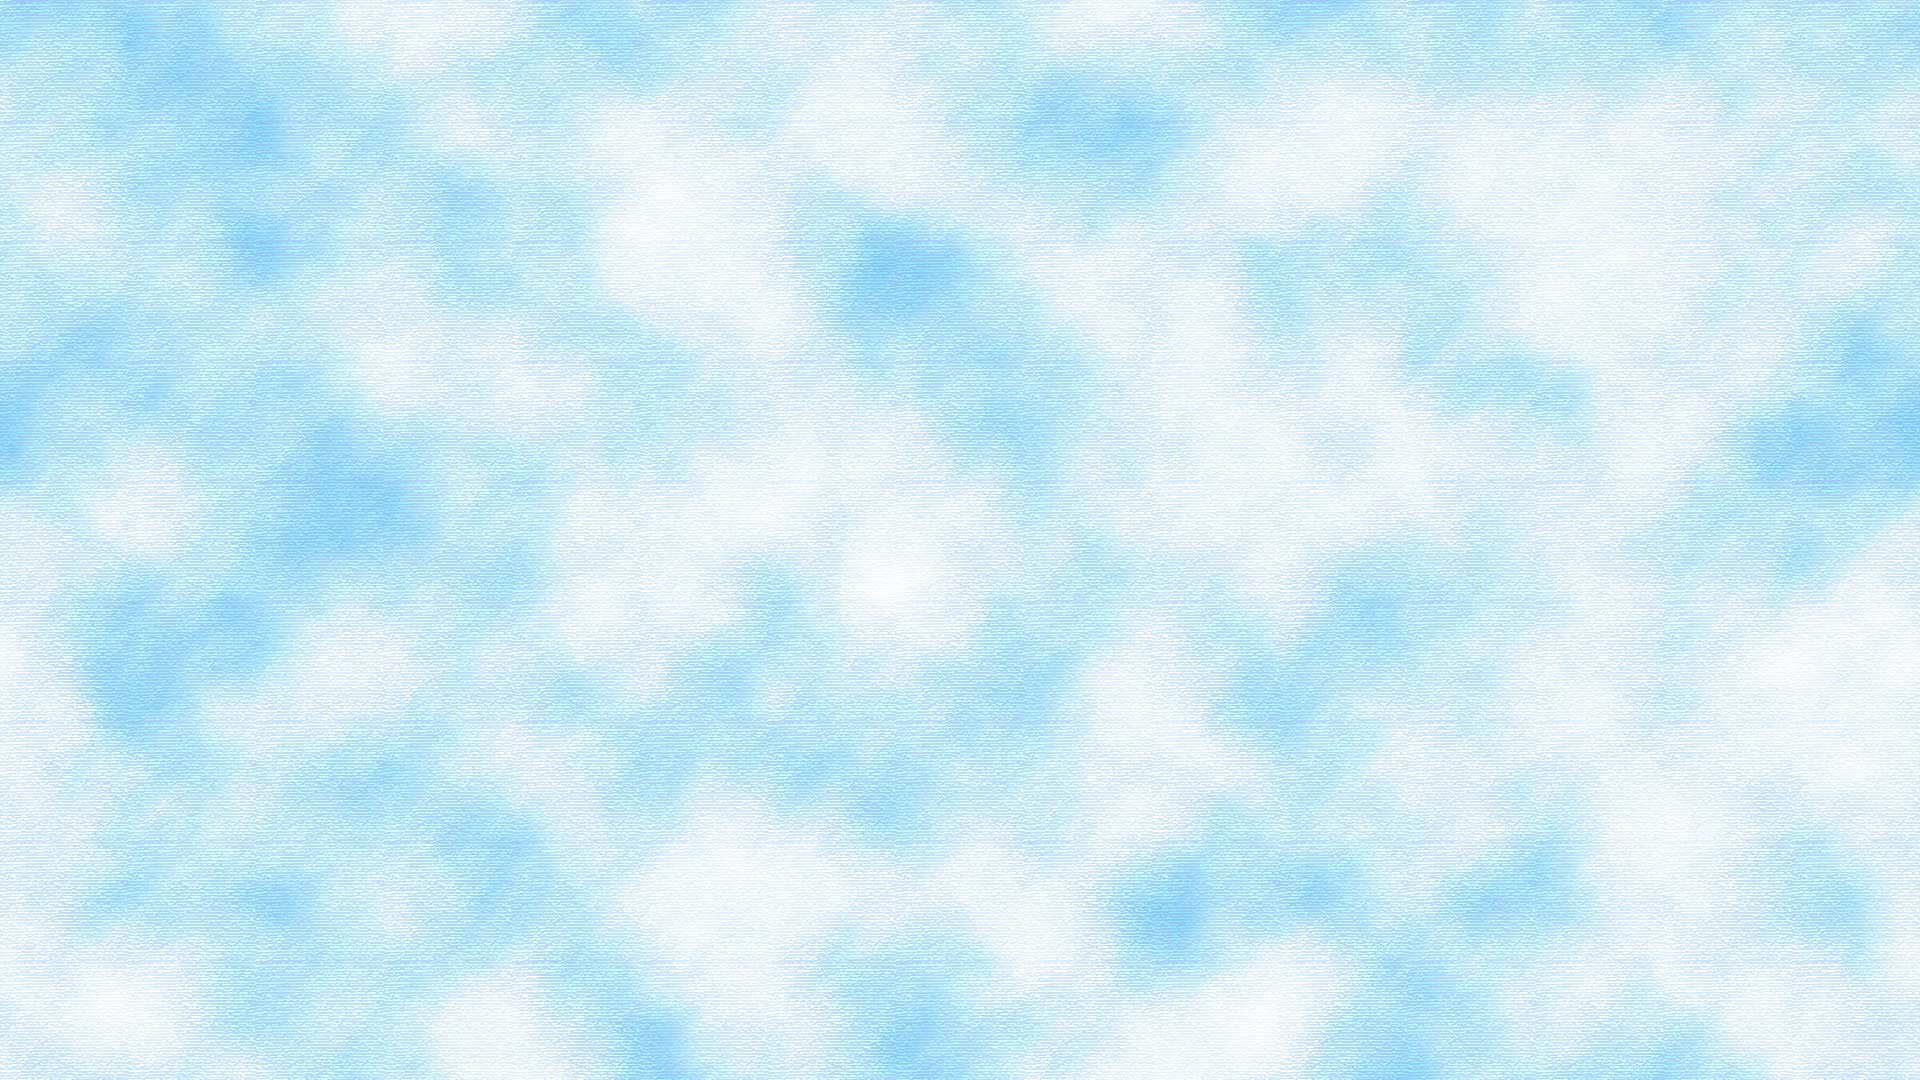 1920x1080 Blue And White Cloud Pattern Background Download Simple